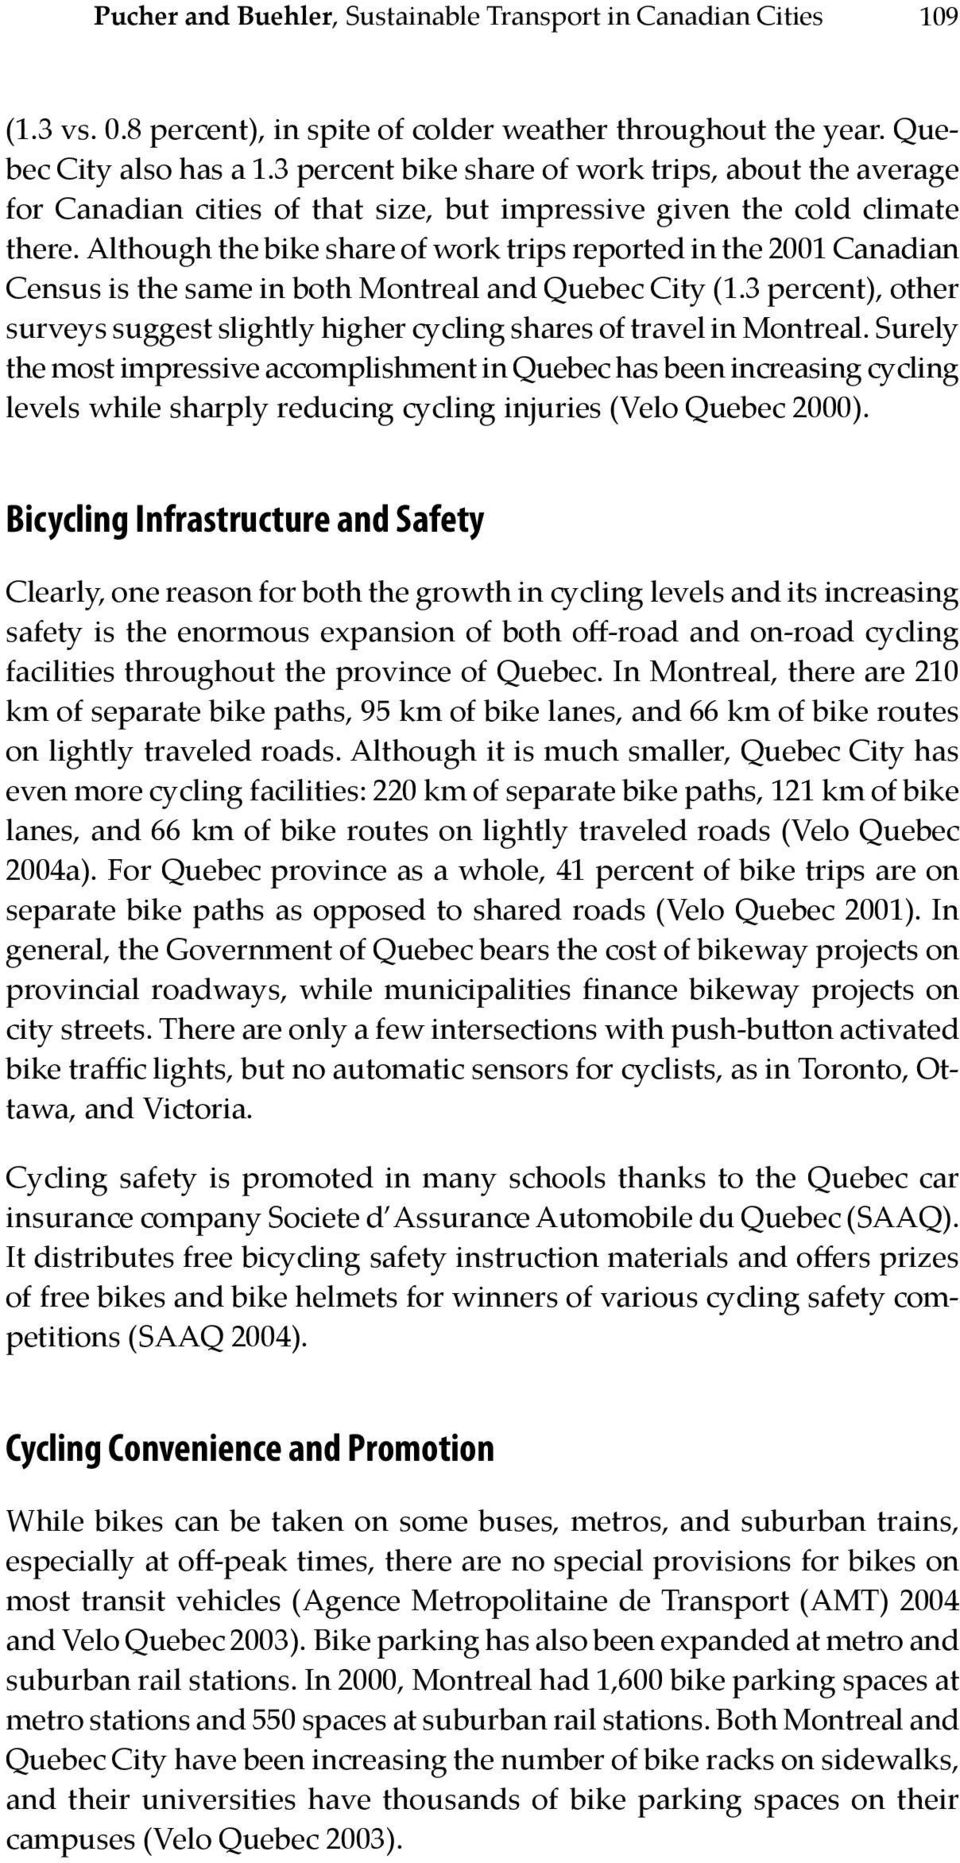 Although the bike share of work trips reported in the 2001 Canadian Census is the same in both Montreal and Quebec City (1.